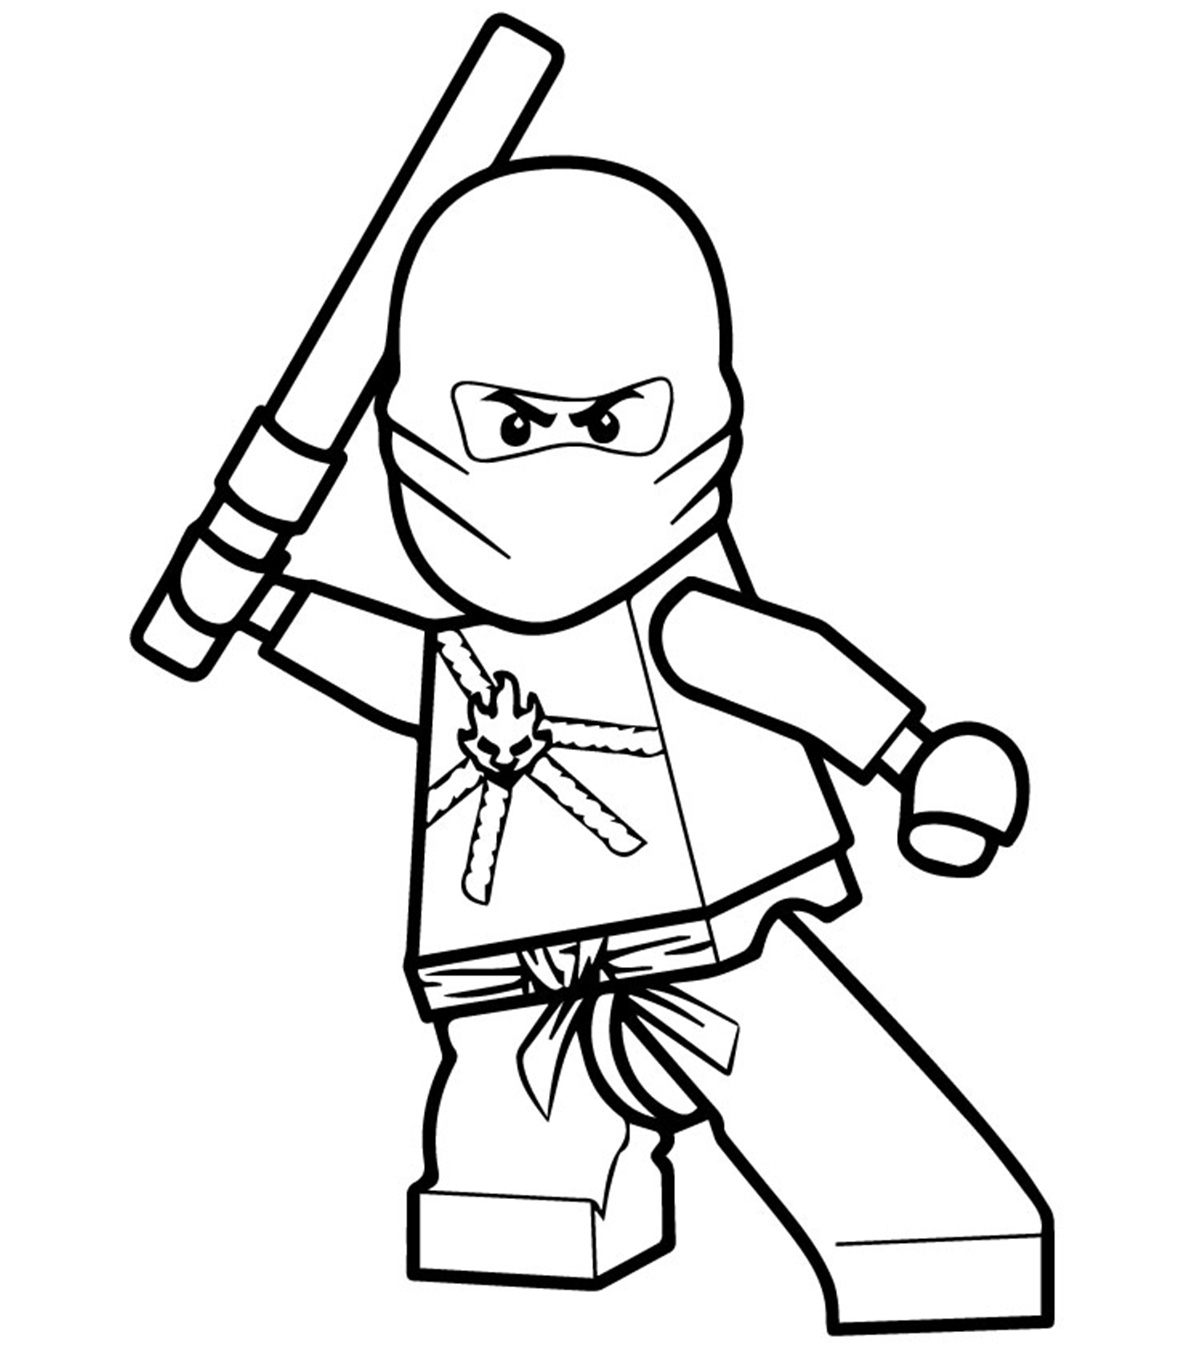 Top 40 Free Printable Ninjago Coloring Pages Online.